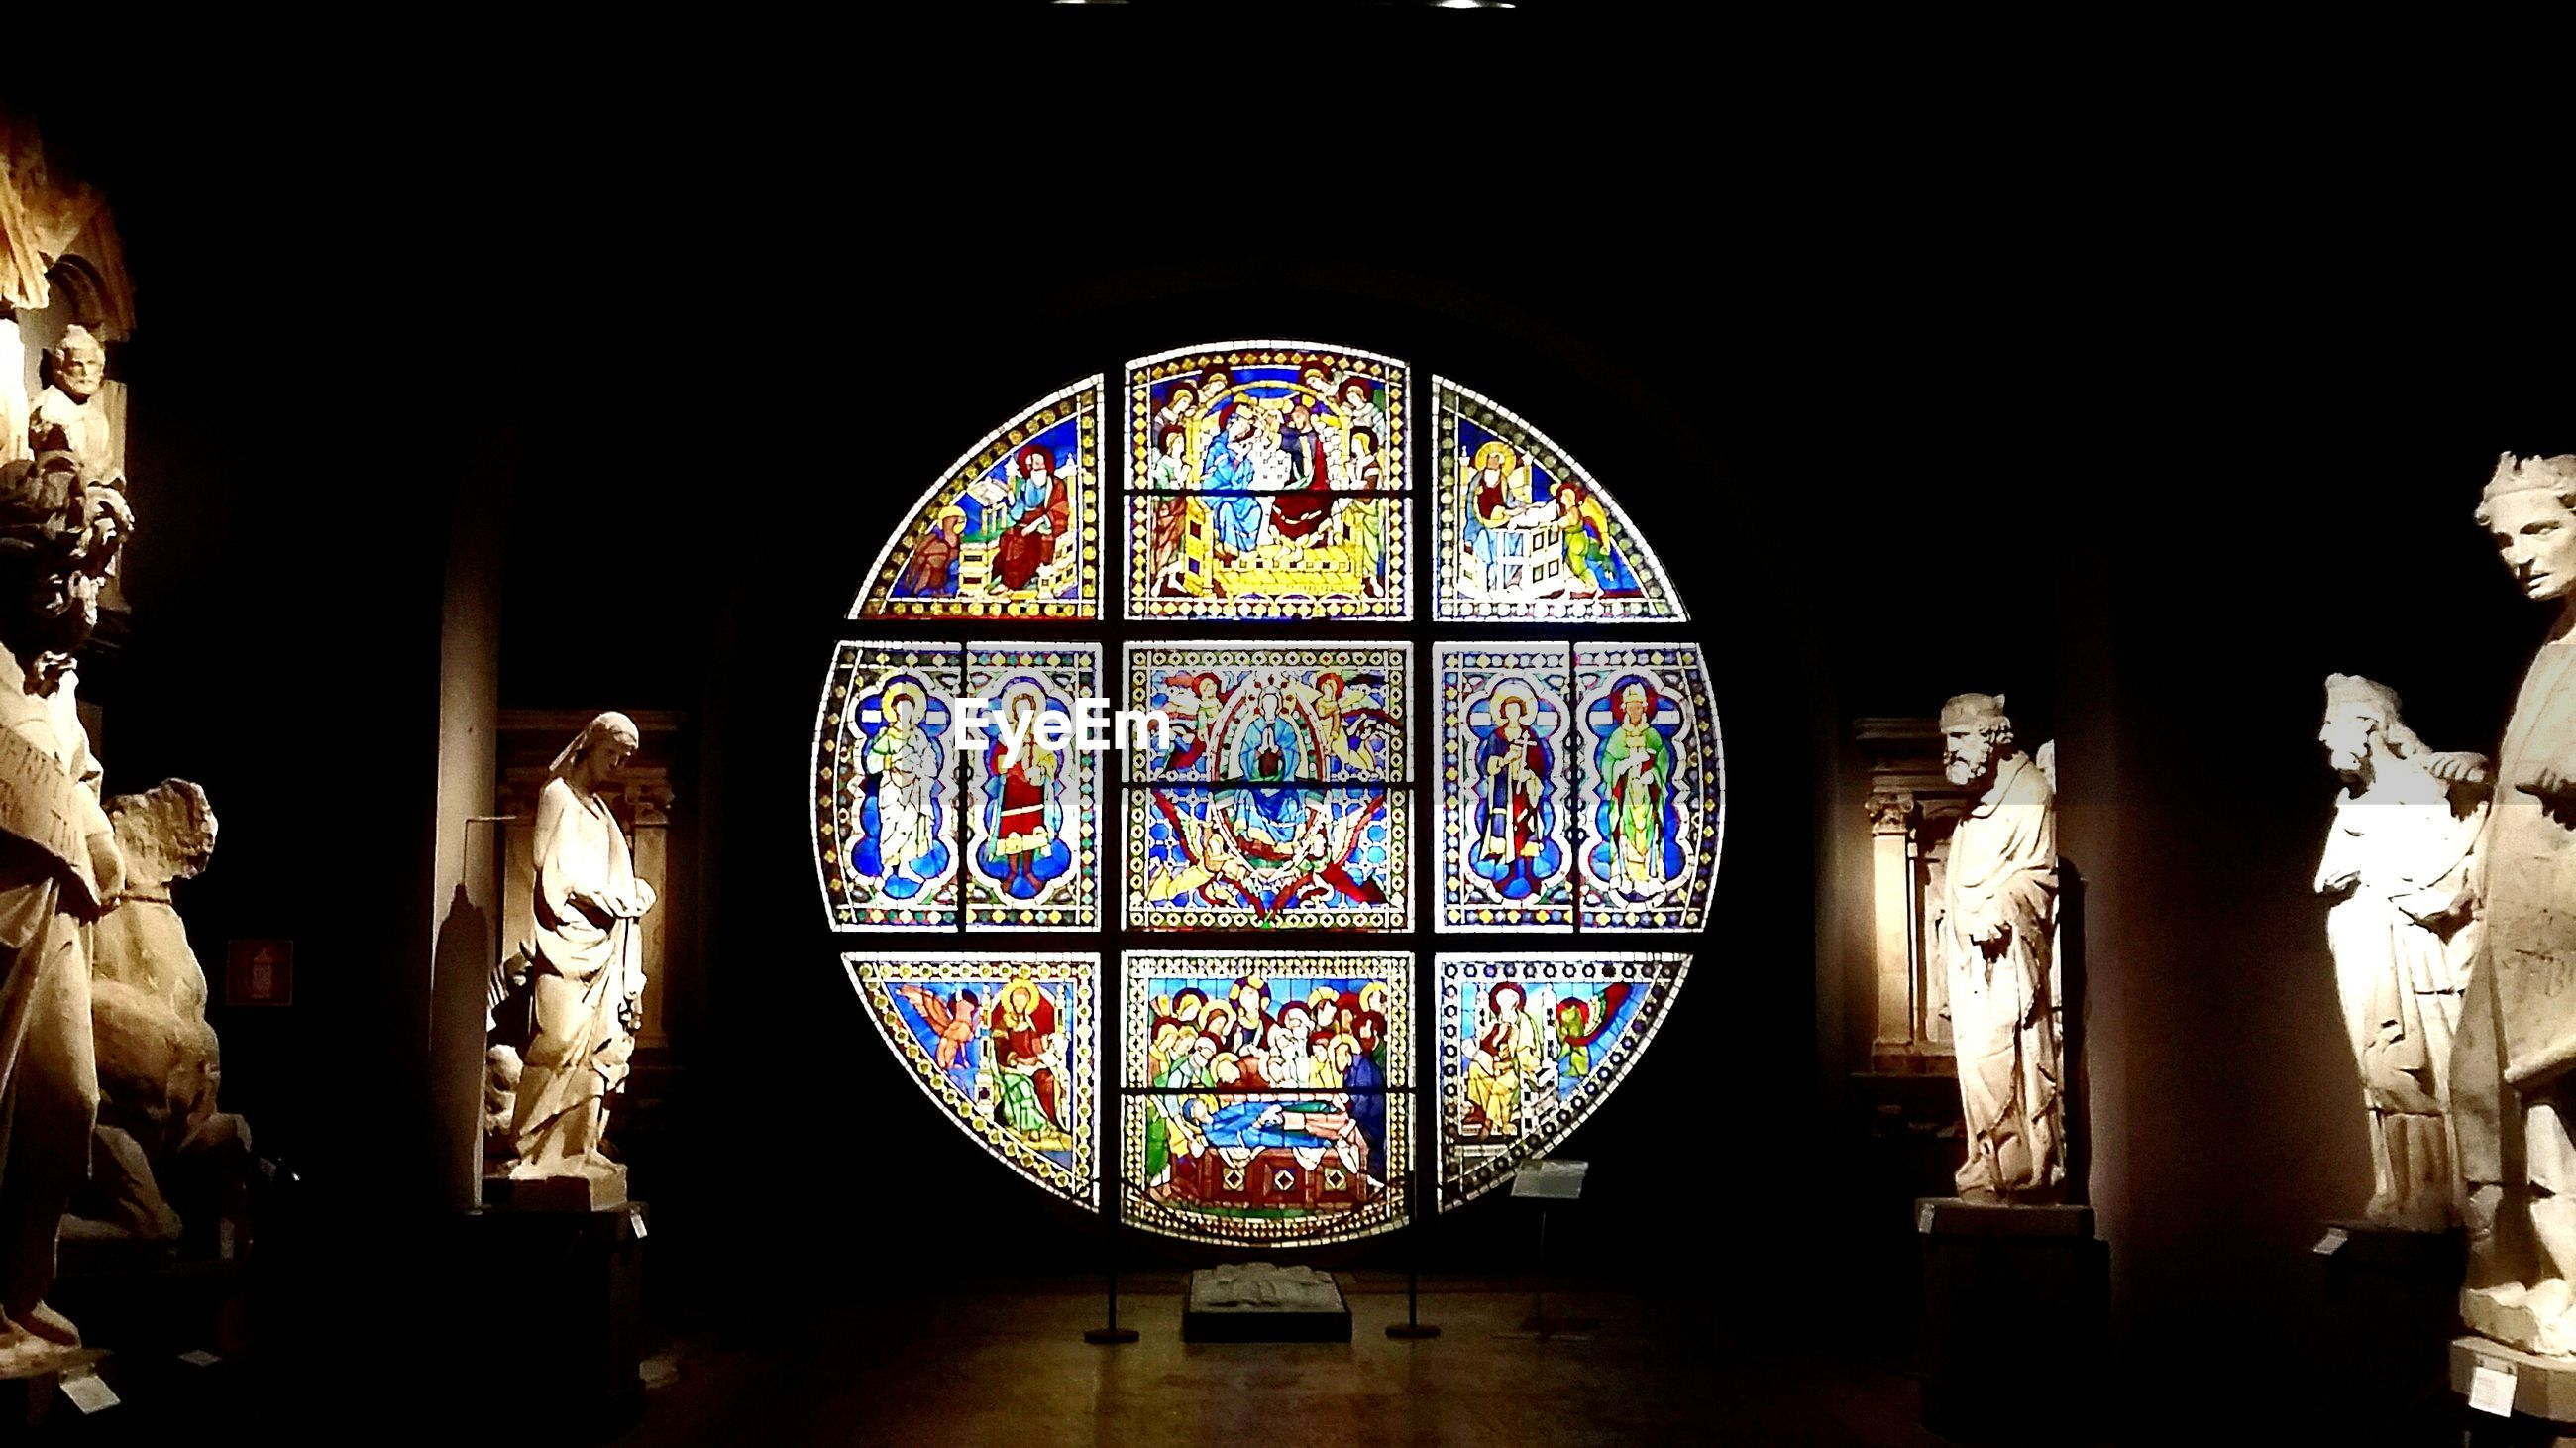 indoors, stained glass, arch, place of worship, religion, spirituality, built structure, architecture, window, design, art, multi colored, church, art and craft, creativity, pattern, ornate, glass - material, low angle view